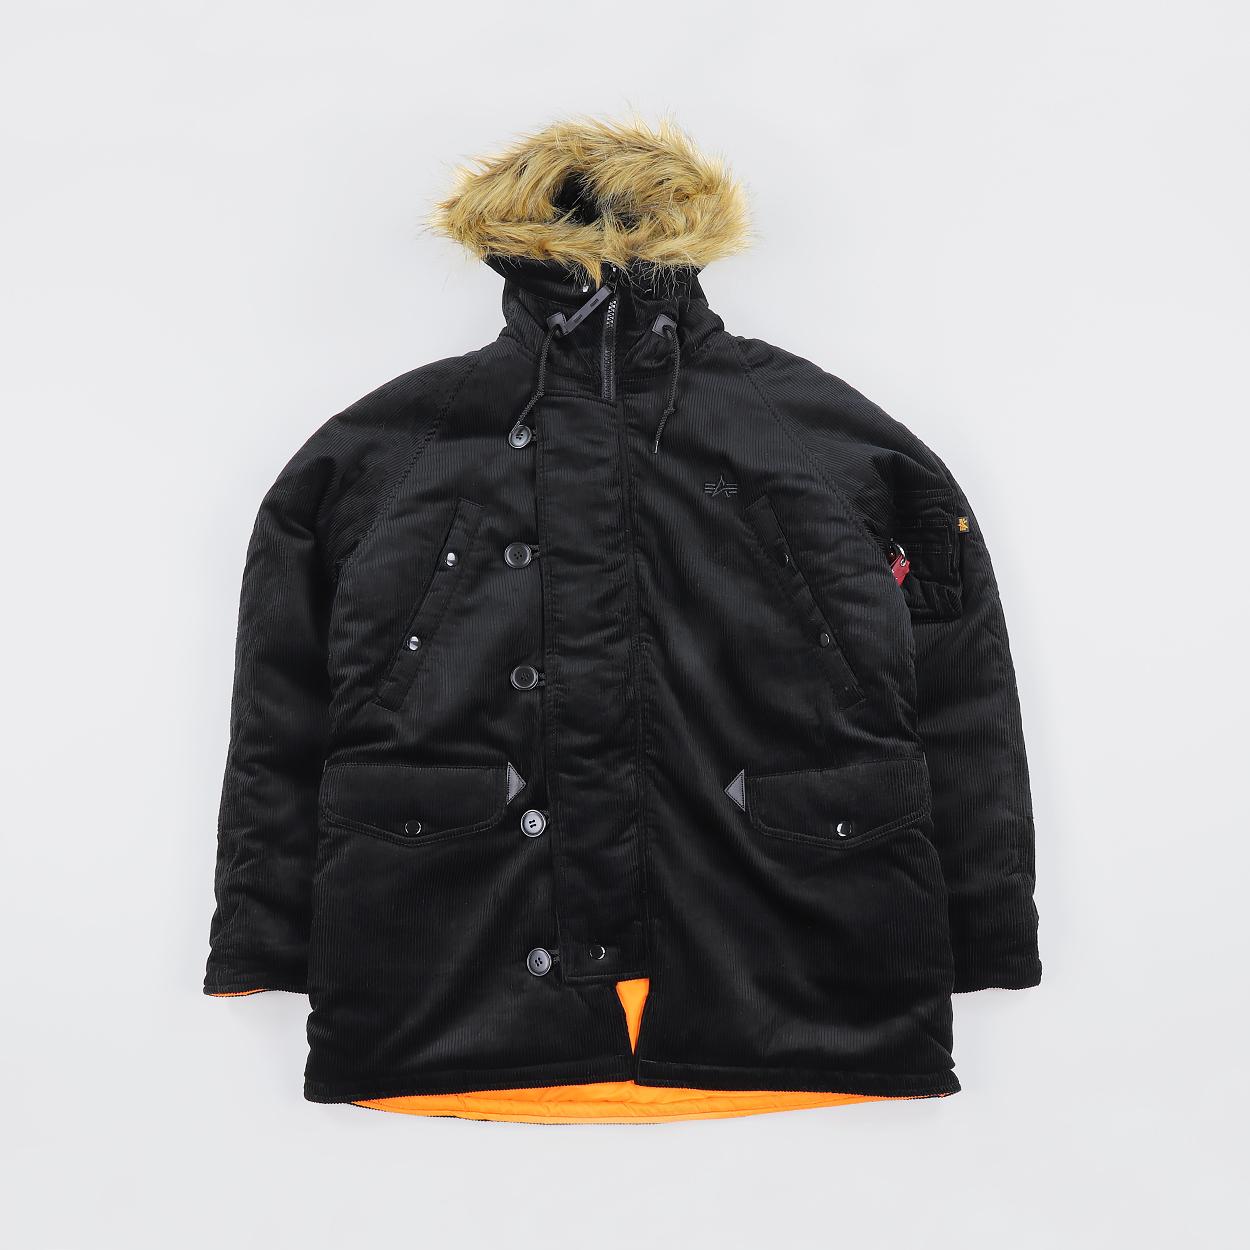 acbeb8583 The Cords and Co. x Alpha Industries N-3B Corduroy Parka Black £181.00